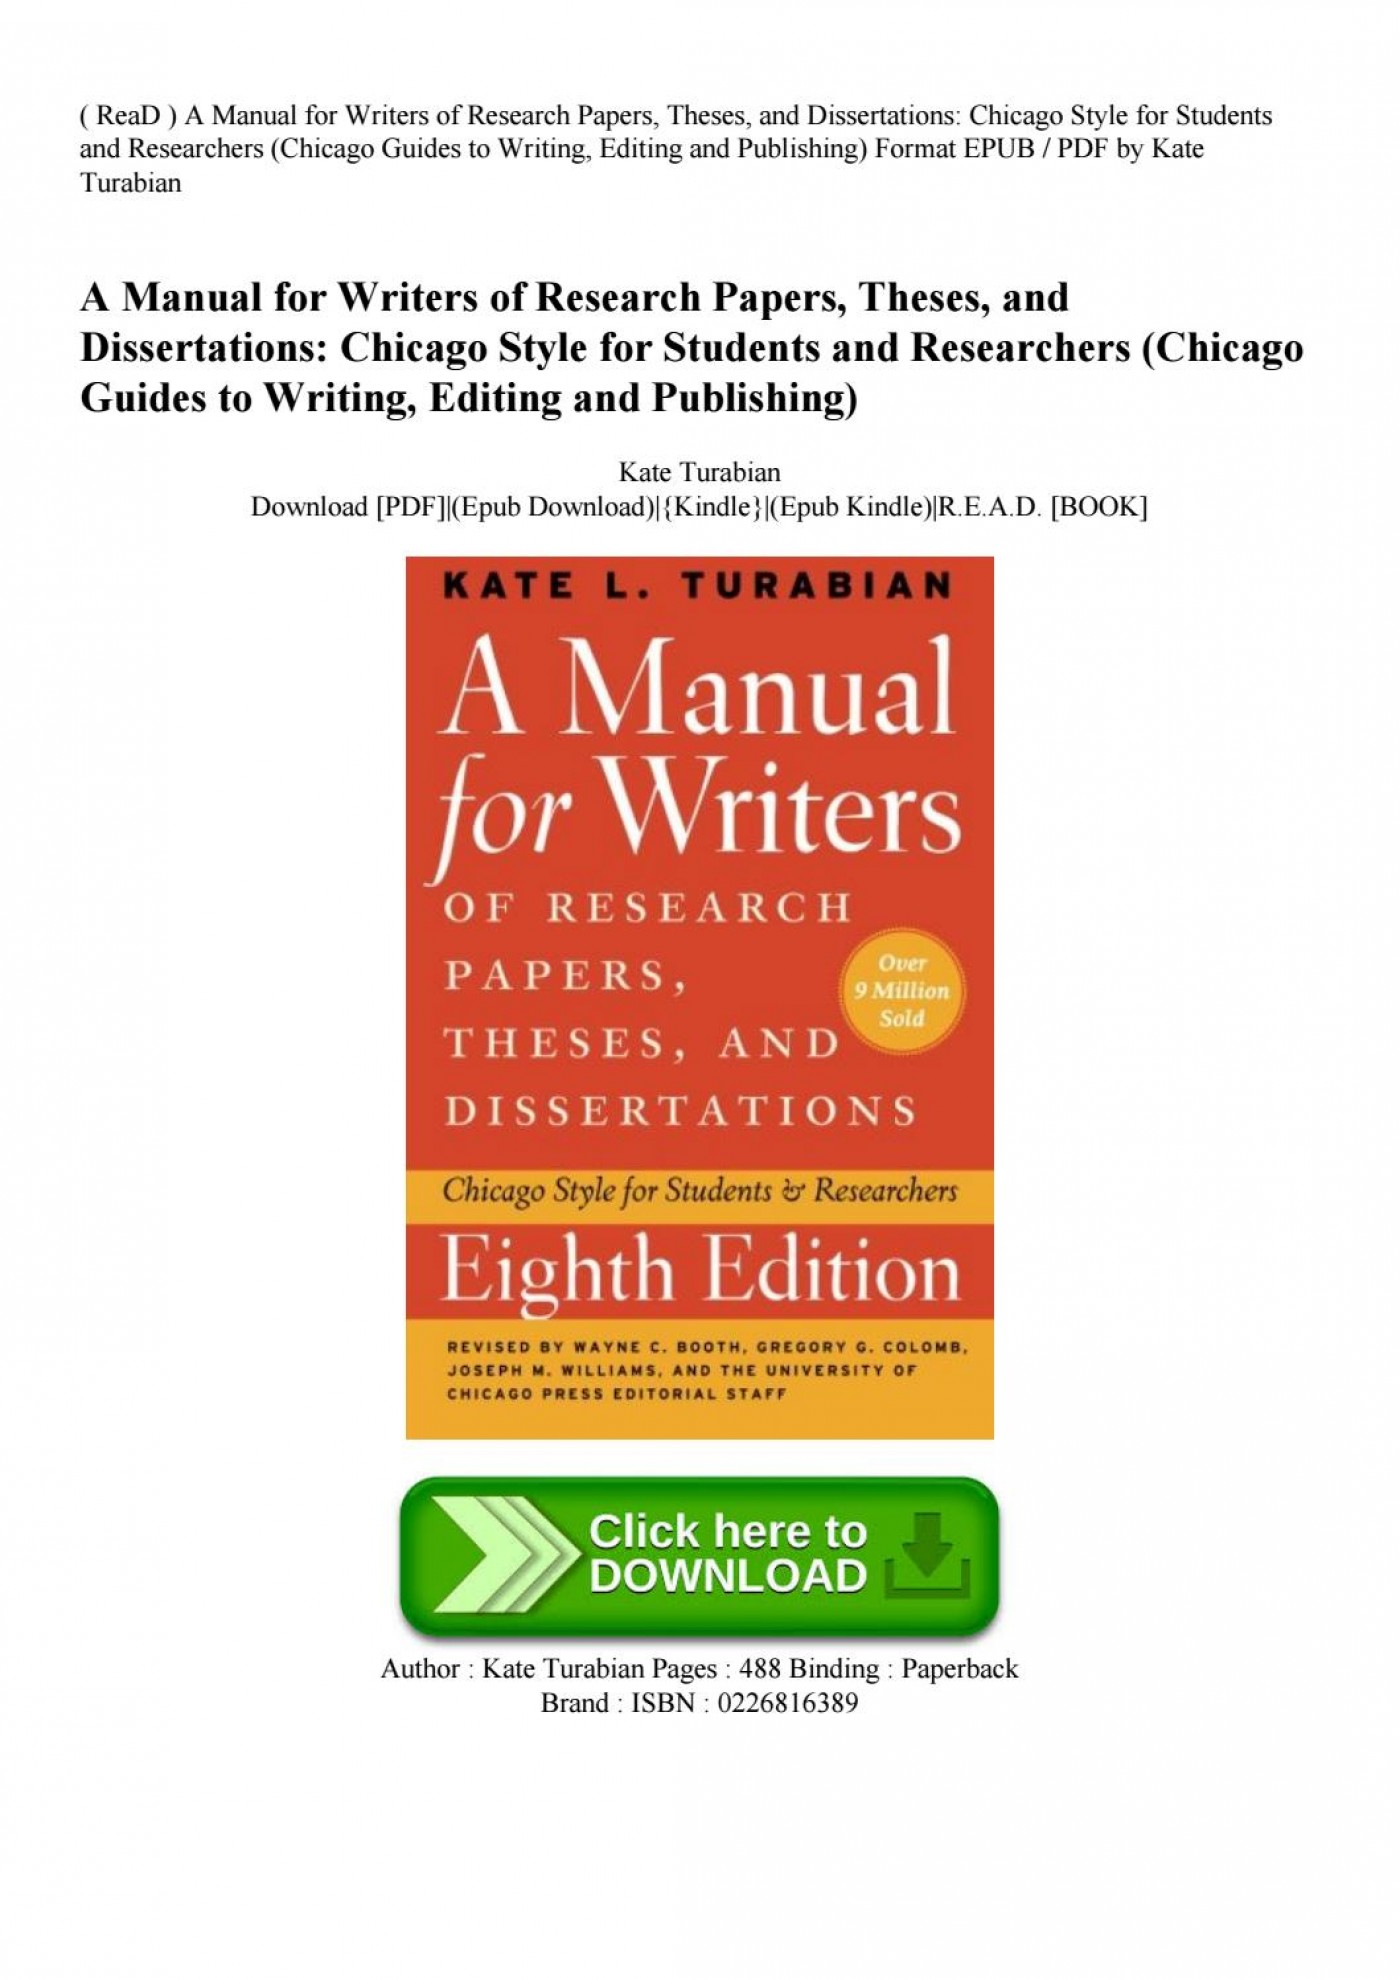 010 Research Paper Manual For Writers Of Papers Theses And Dissertations Page 1 Sensational A Ed. 8 8th Edition Ninth Pdf 1400